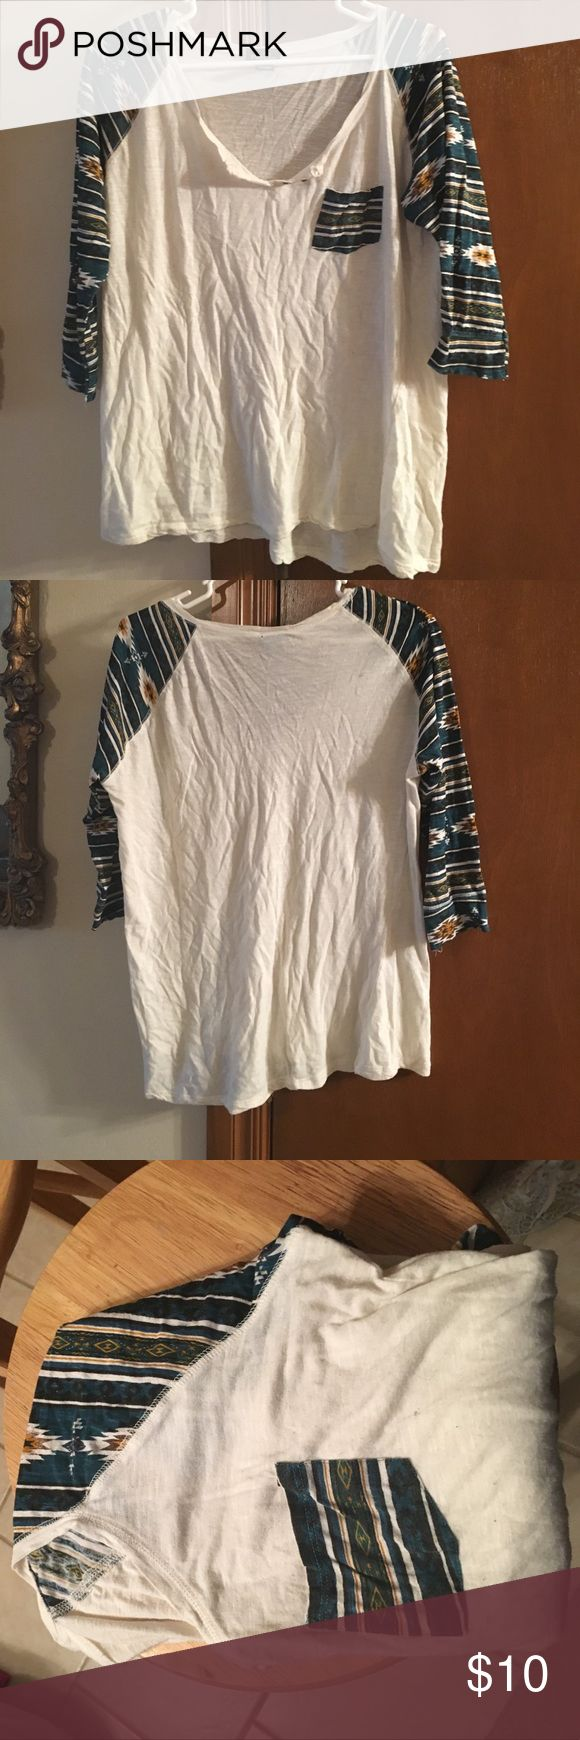 Woman's 3/4 sleeve t shirt 3/4 sleeve woman's t shirt. Aztec printed sleeves and pocket. Great condition Rue 21 Tops Tees - Long Sleeve